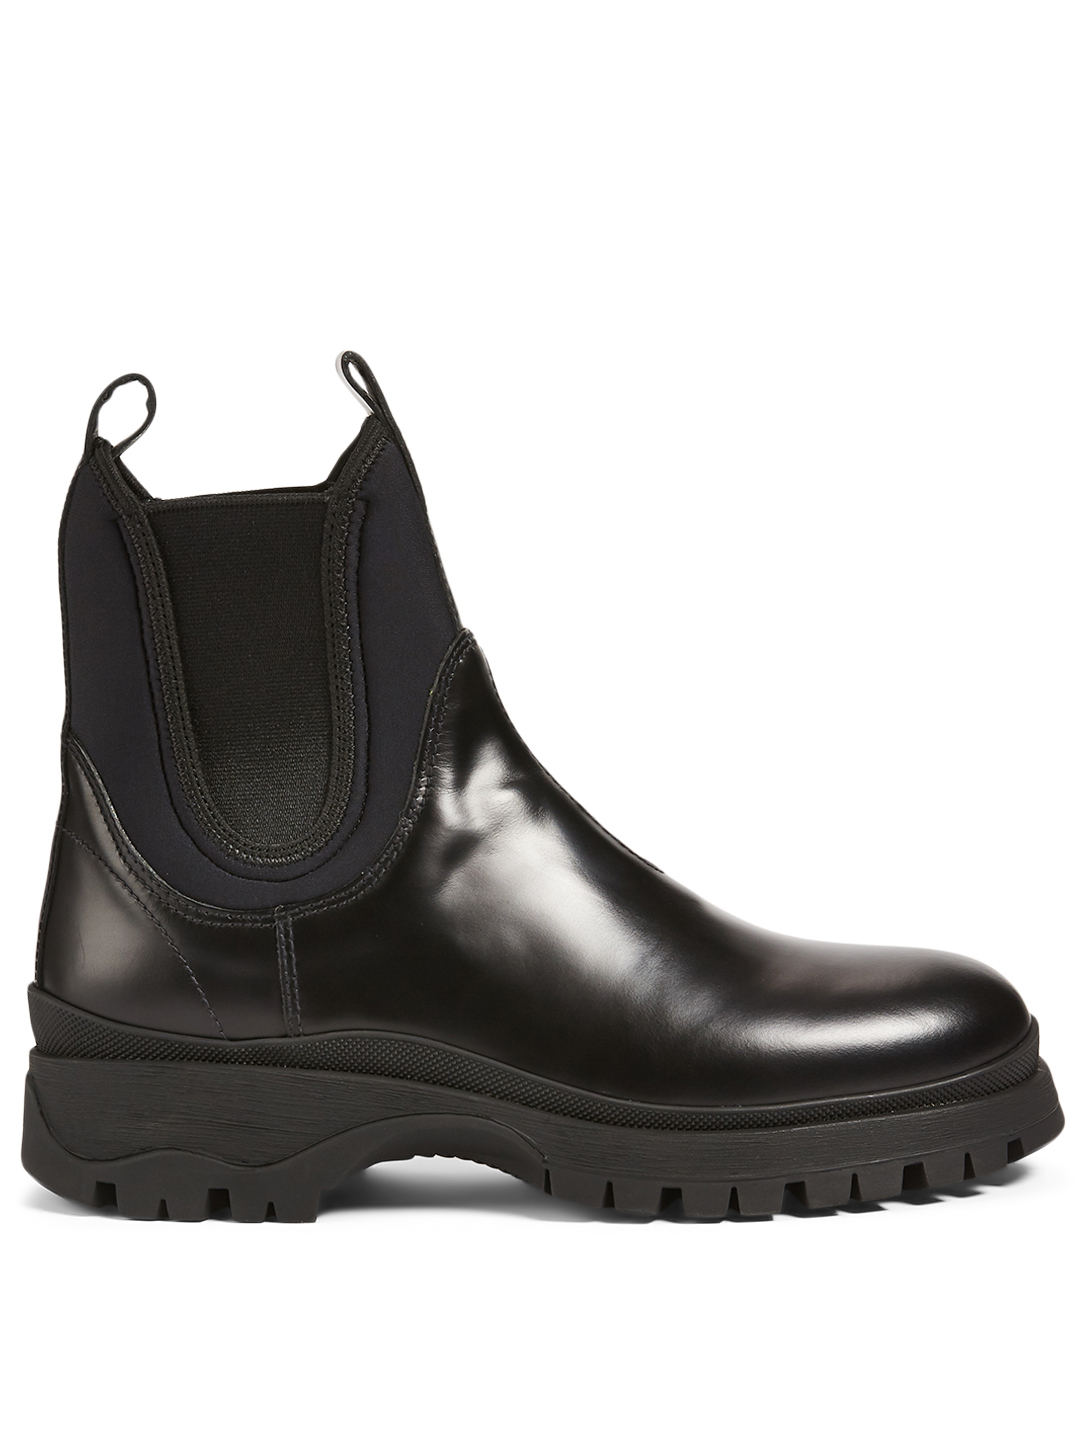 PRADA Leather And Neoprene Chelsea Boots Women's Black